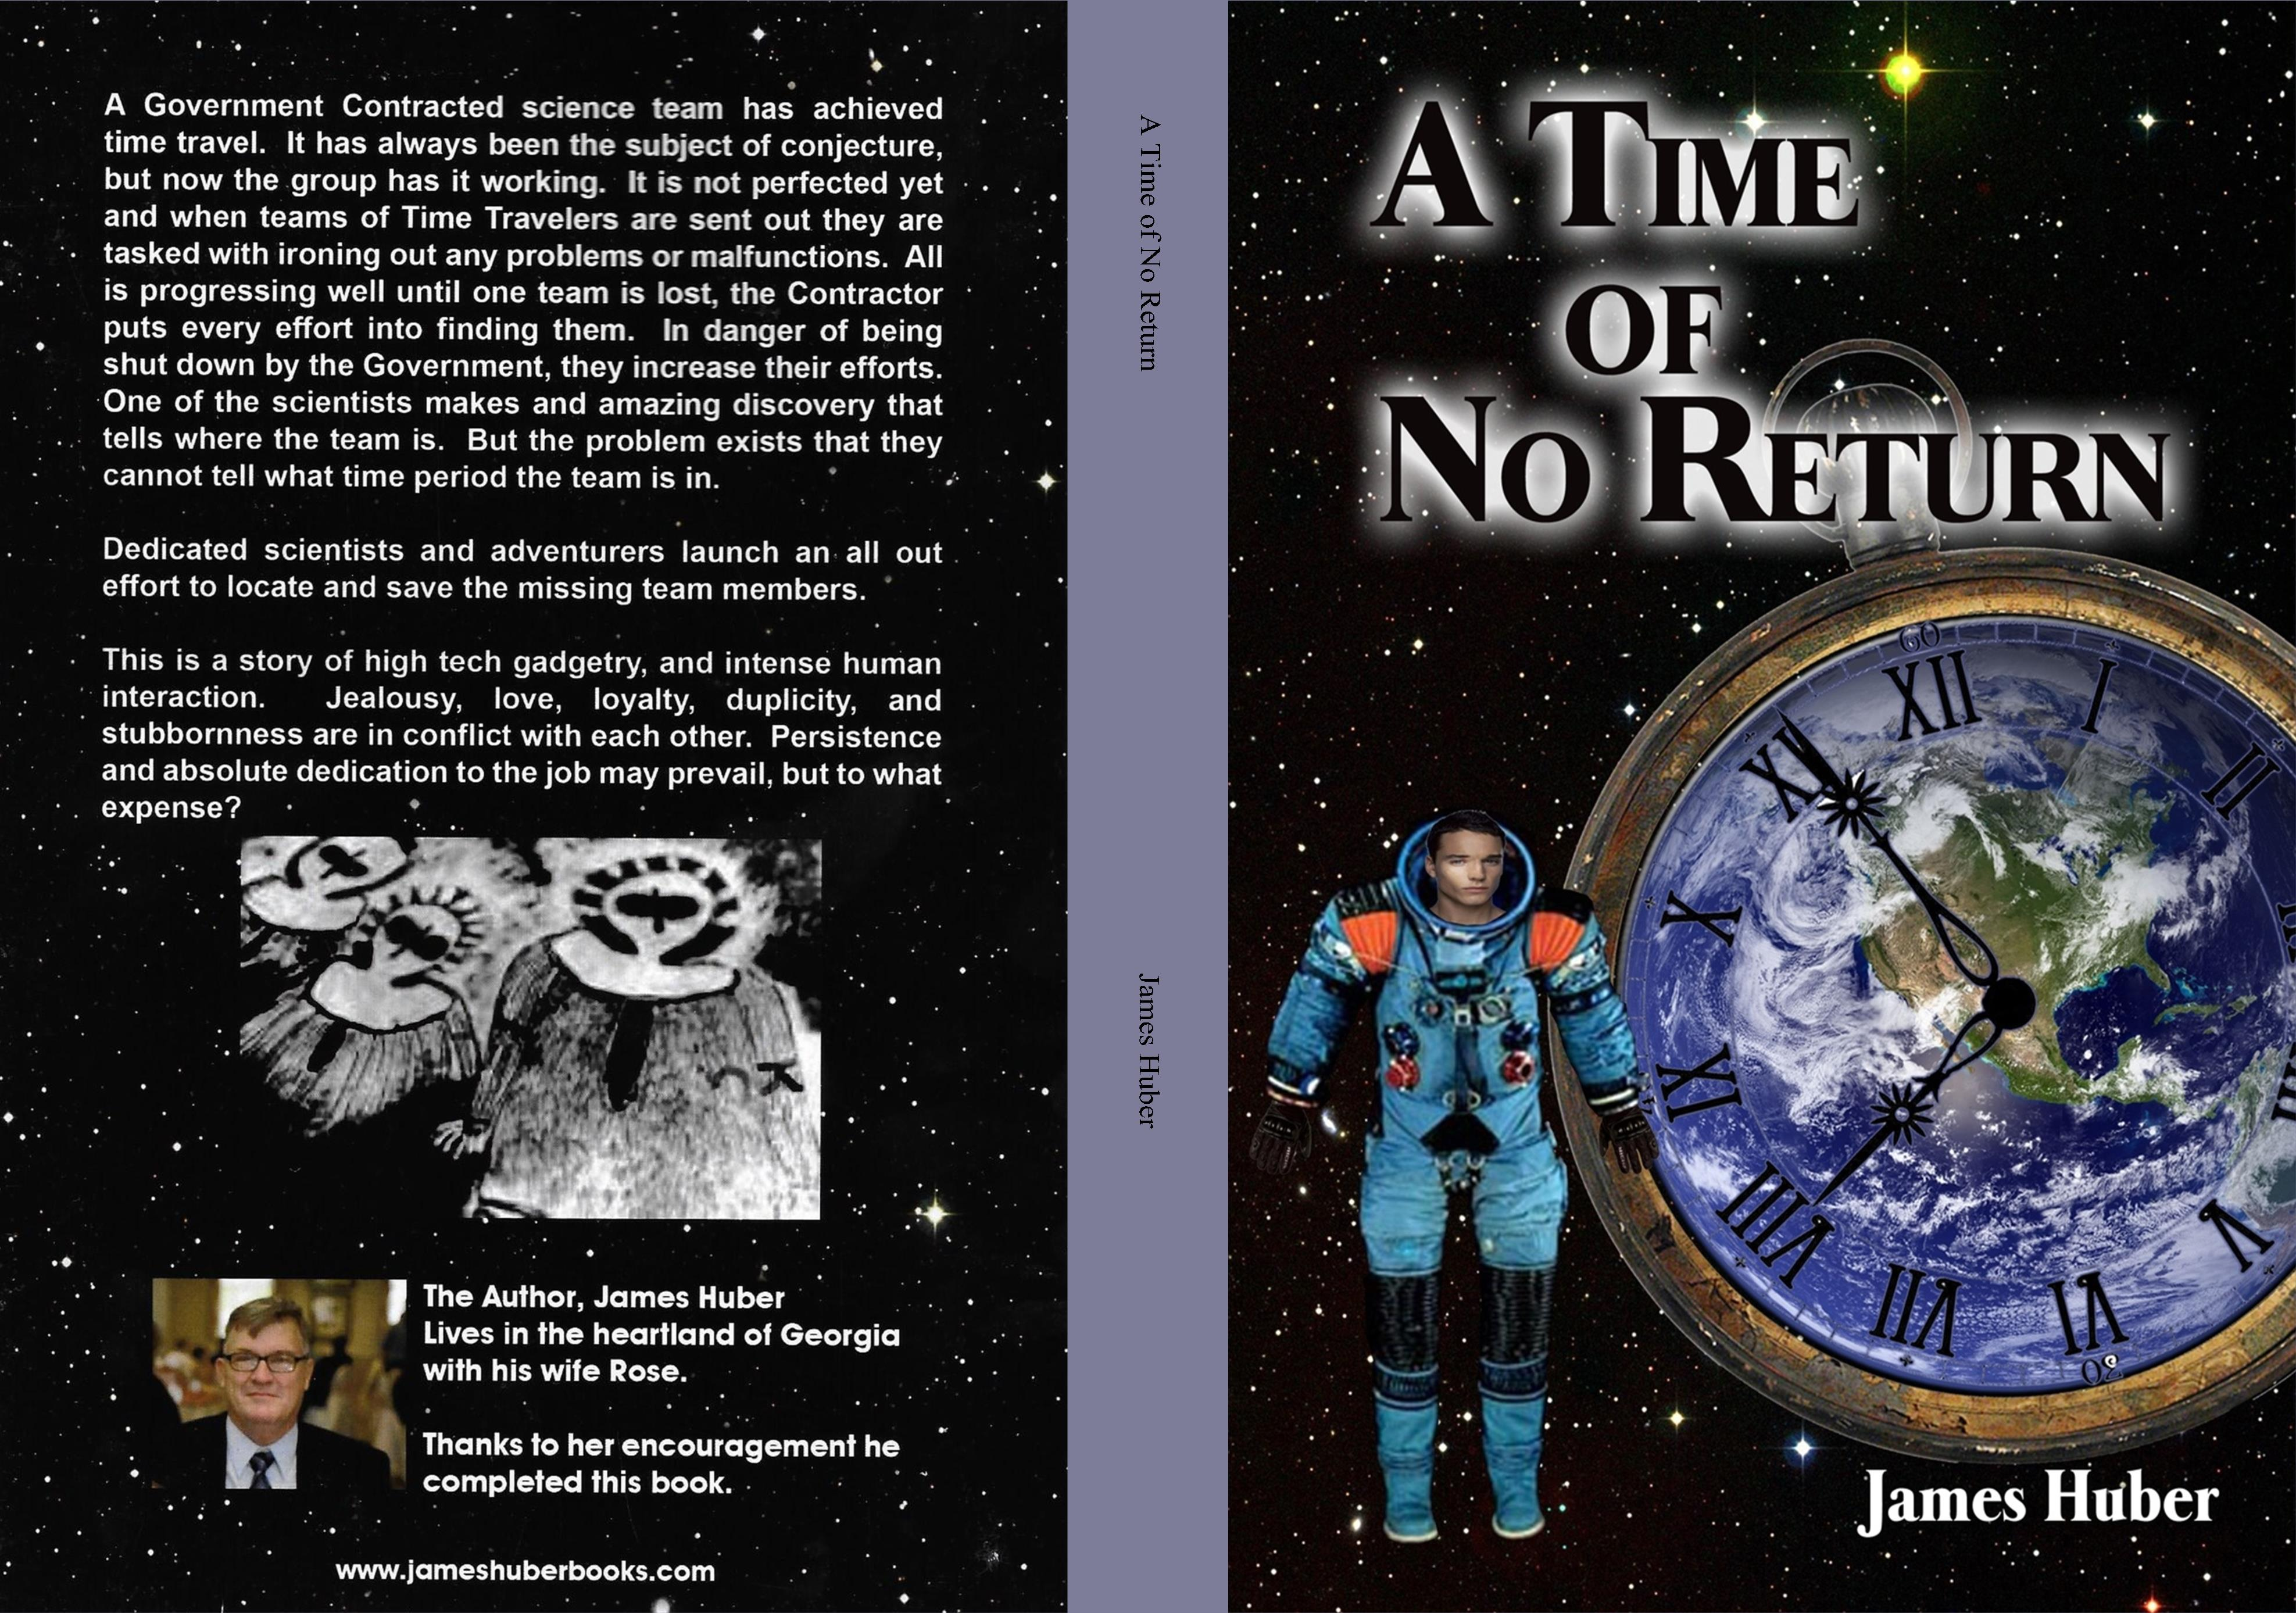 A Time of No Return cover image